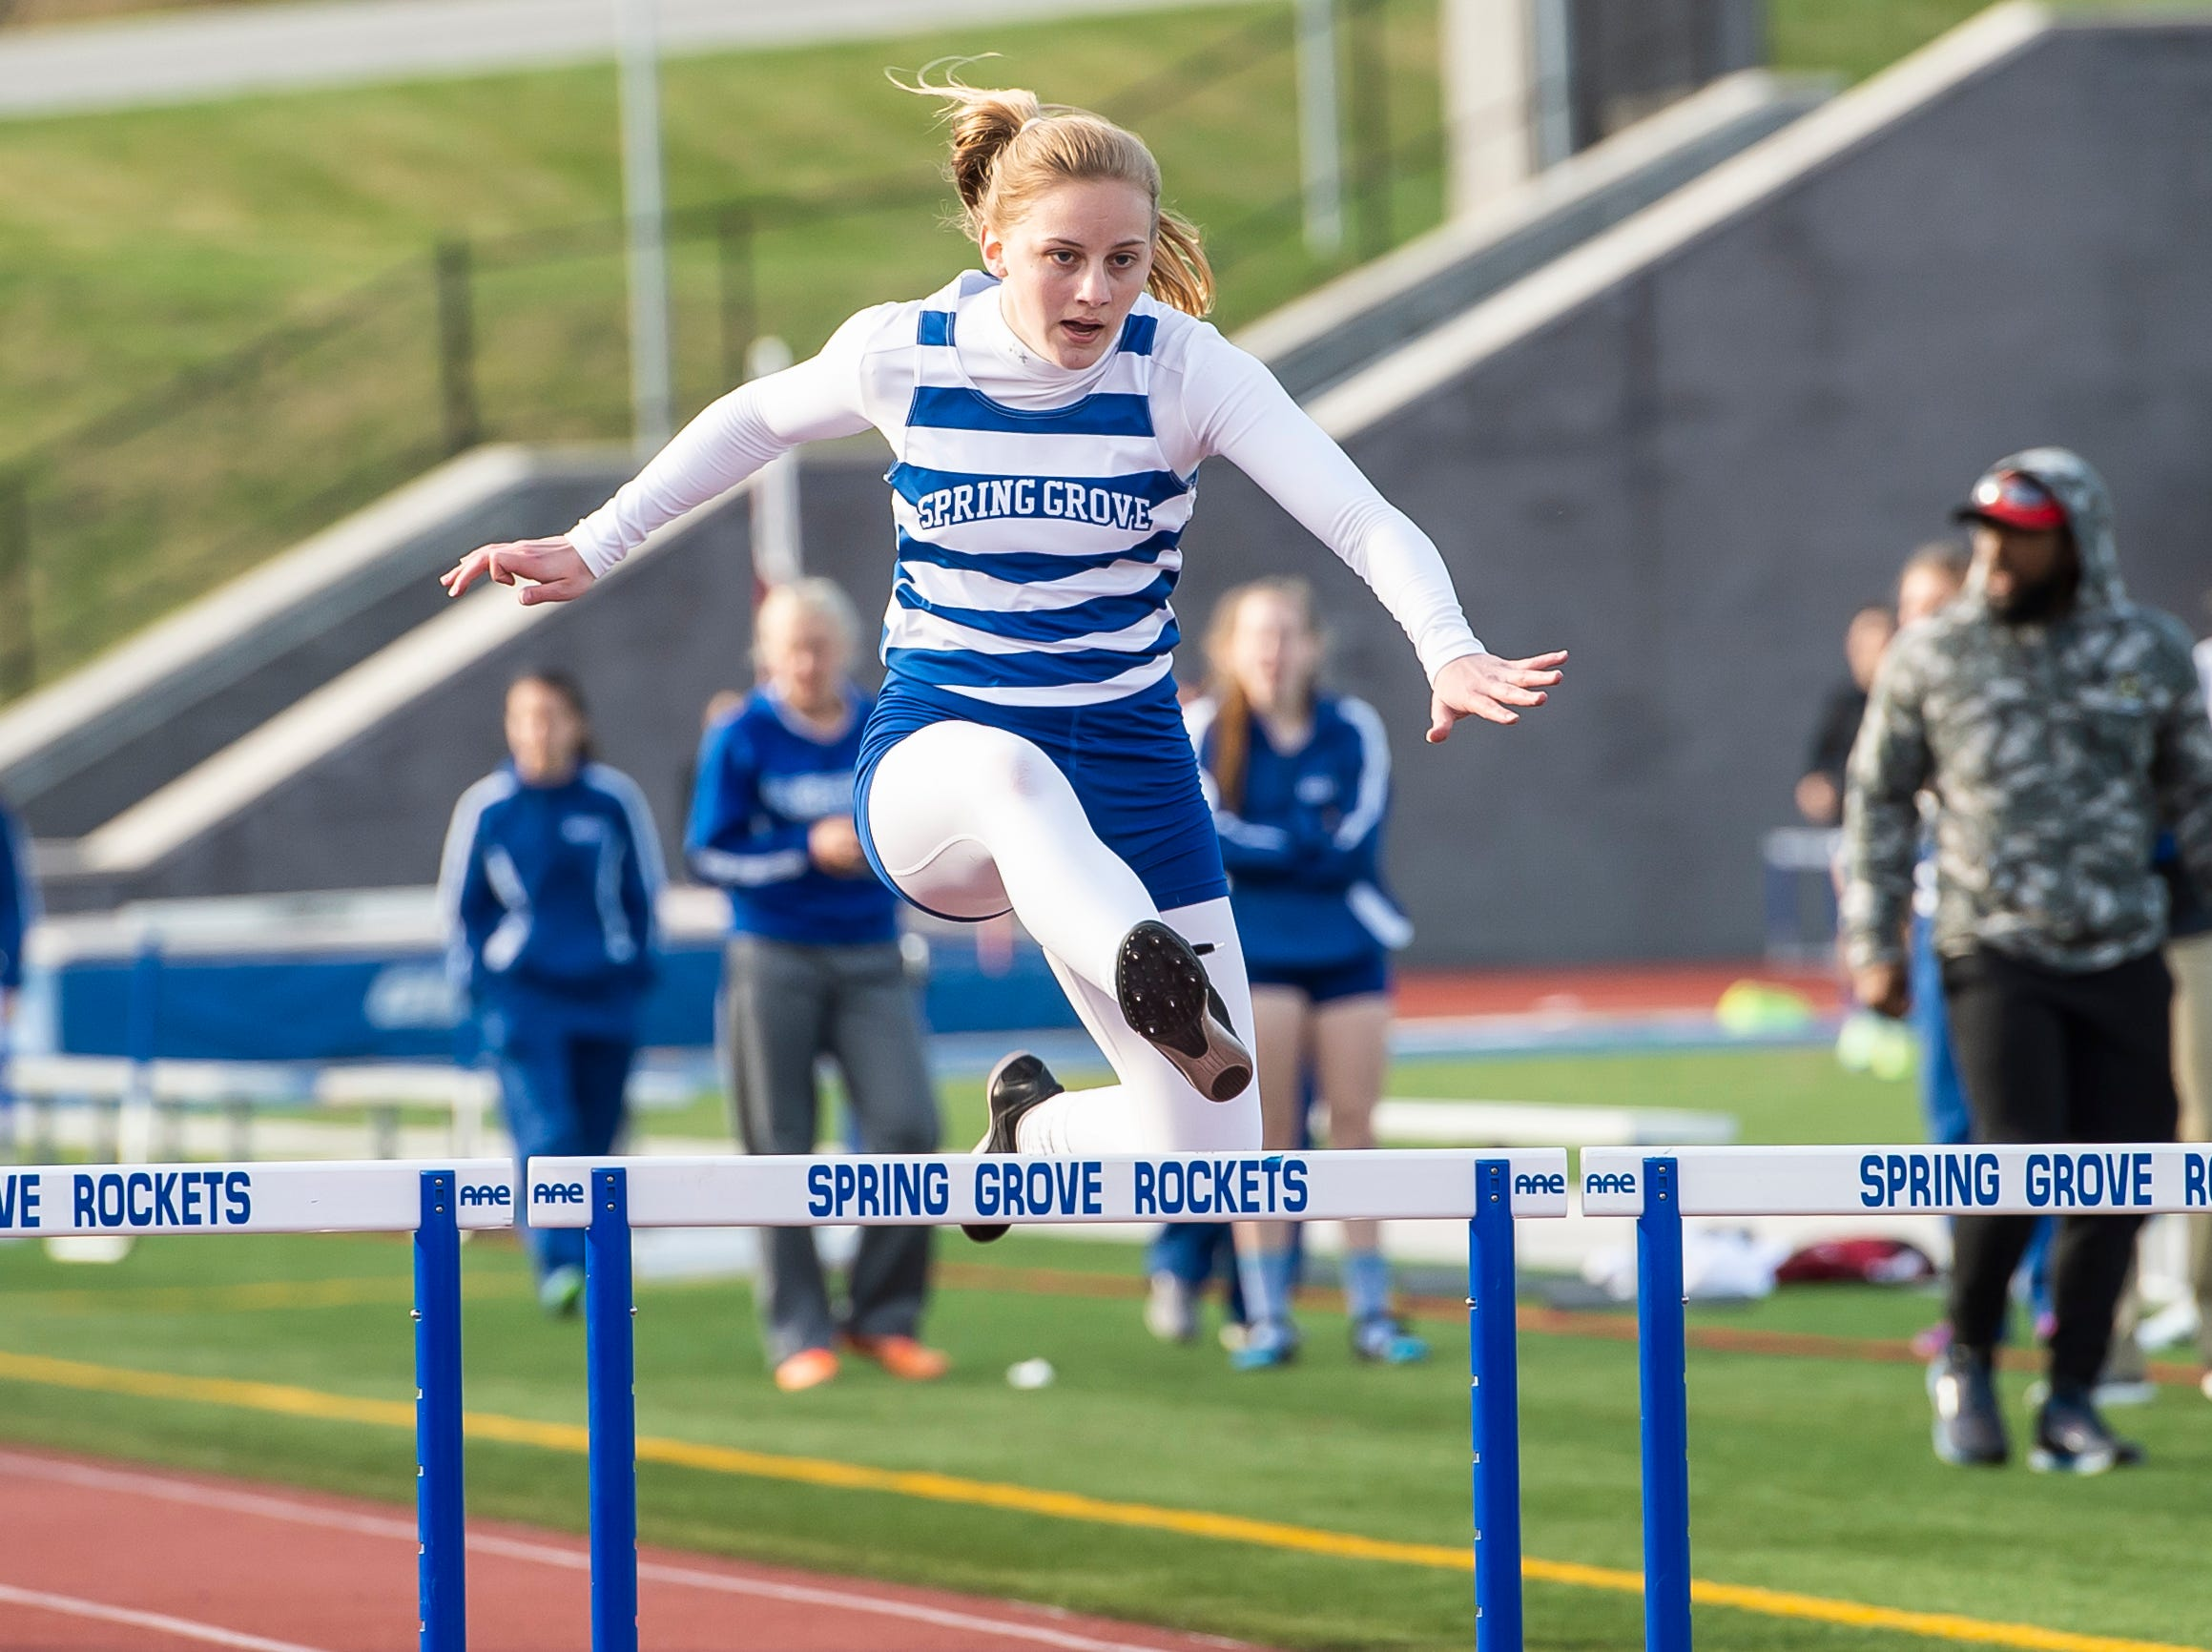 Spring Grove's Sophia Kline leaps over the final hurdle in the 300m hurdles on her way to place first during a track and field meet against South Western on Thursday, April 11, 2019.